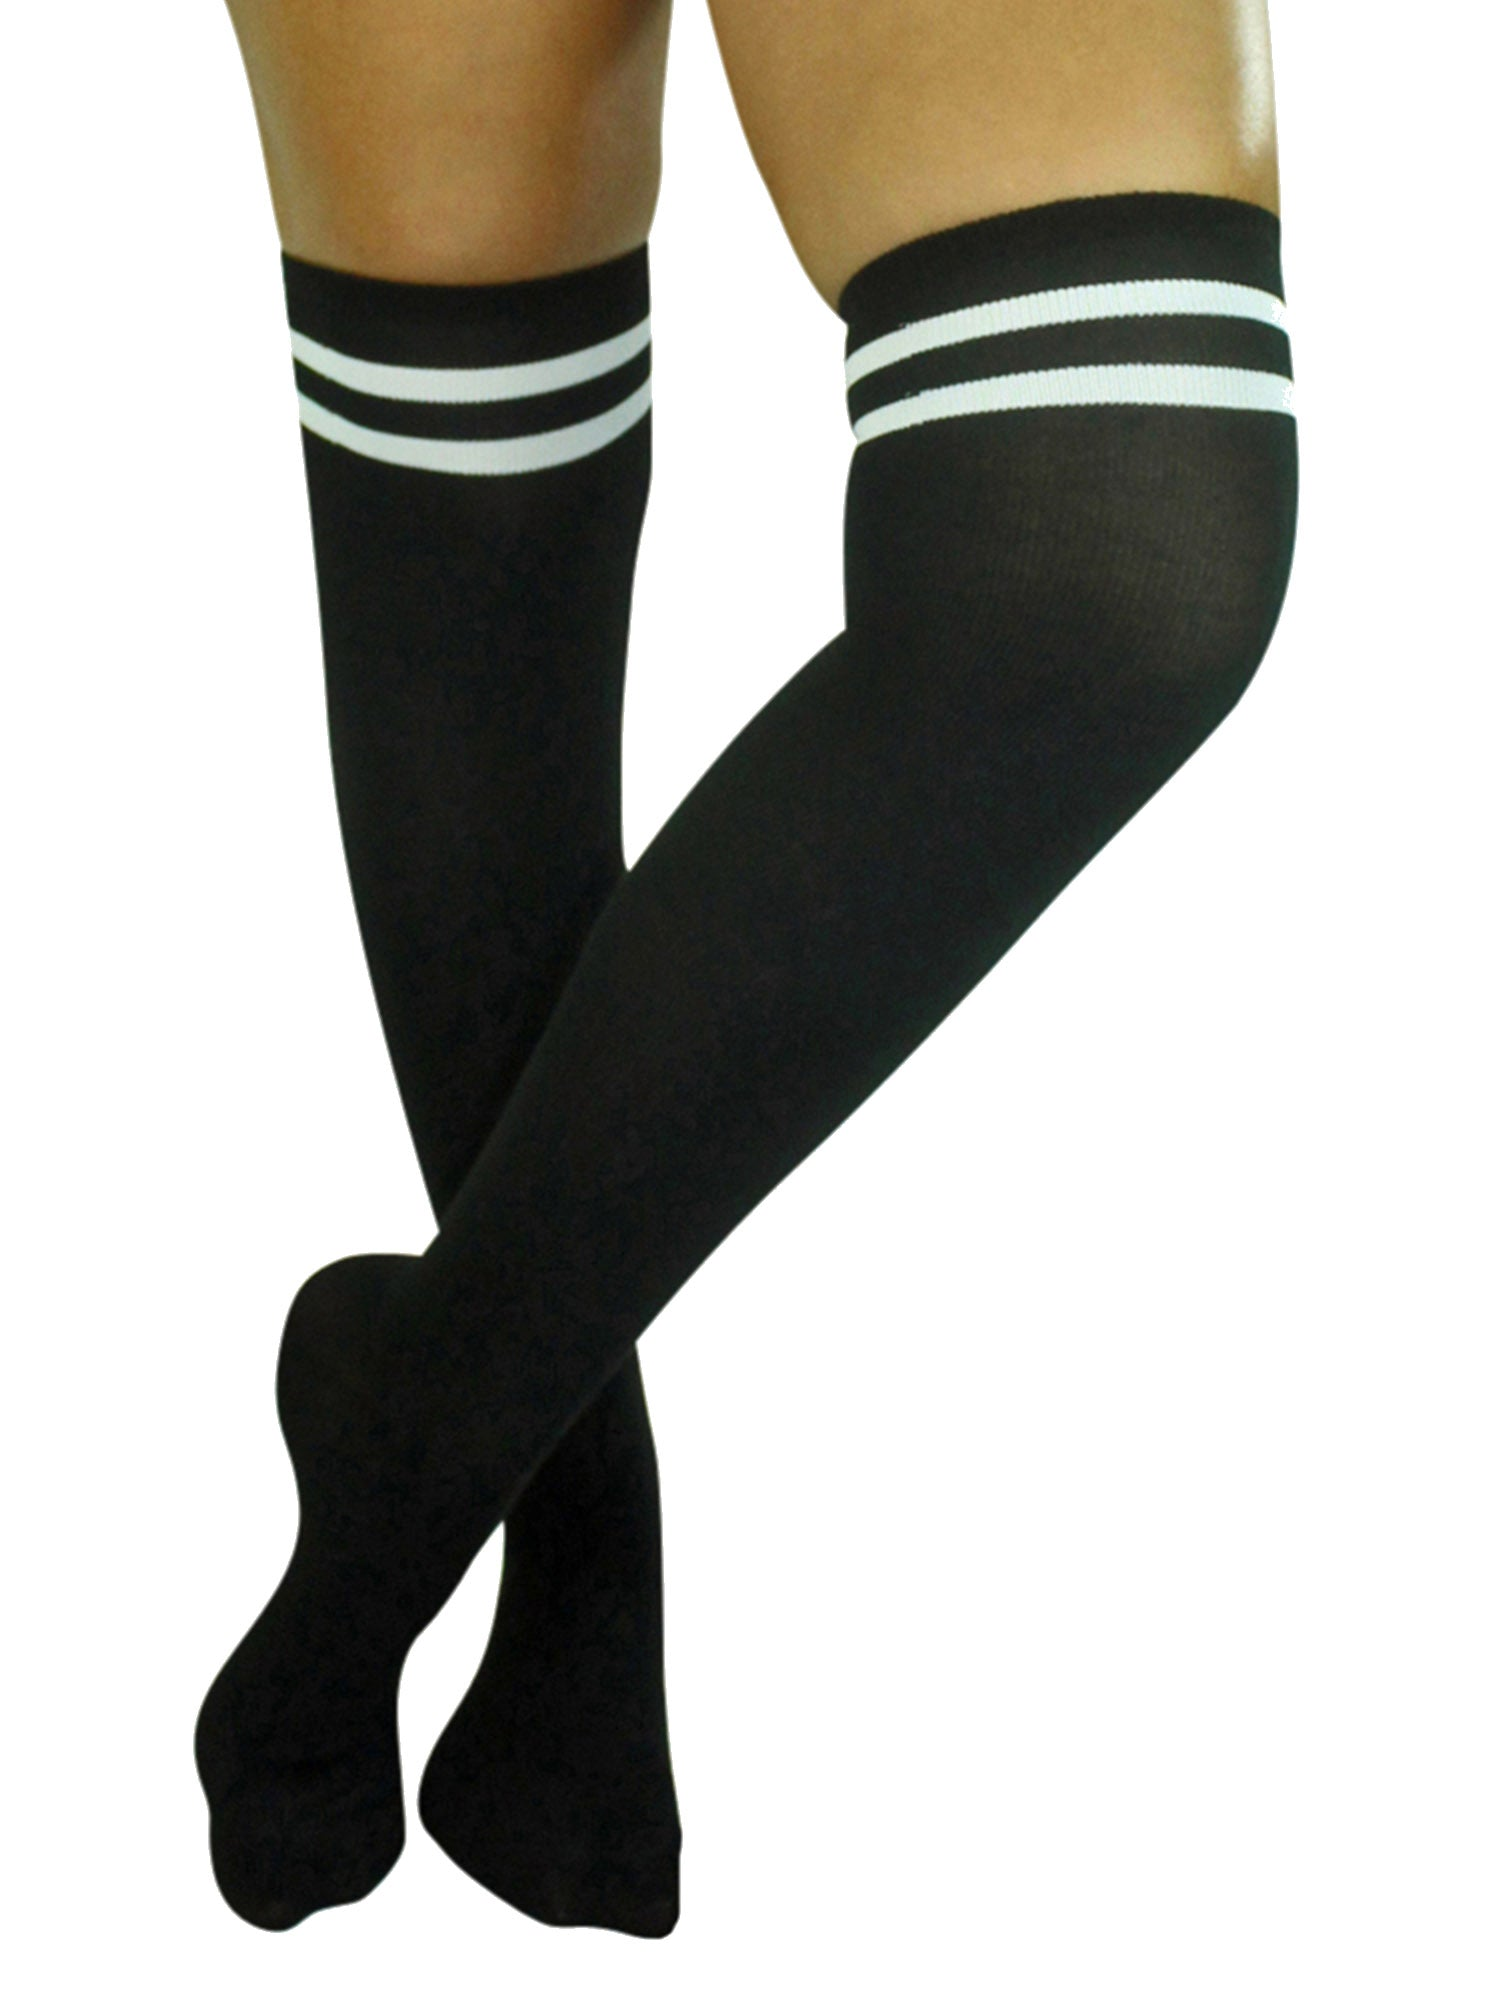 Black Thigh High School Girl Socks With Double Stripe Top